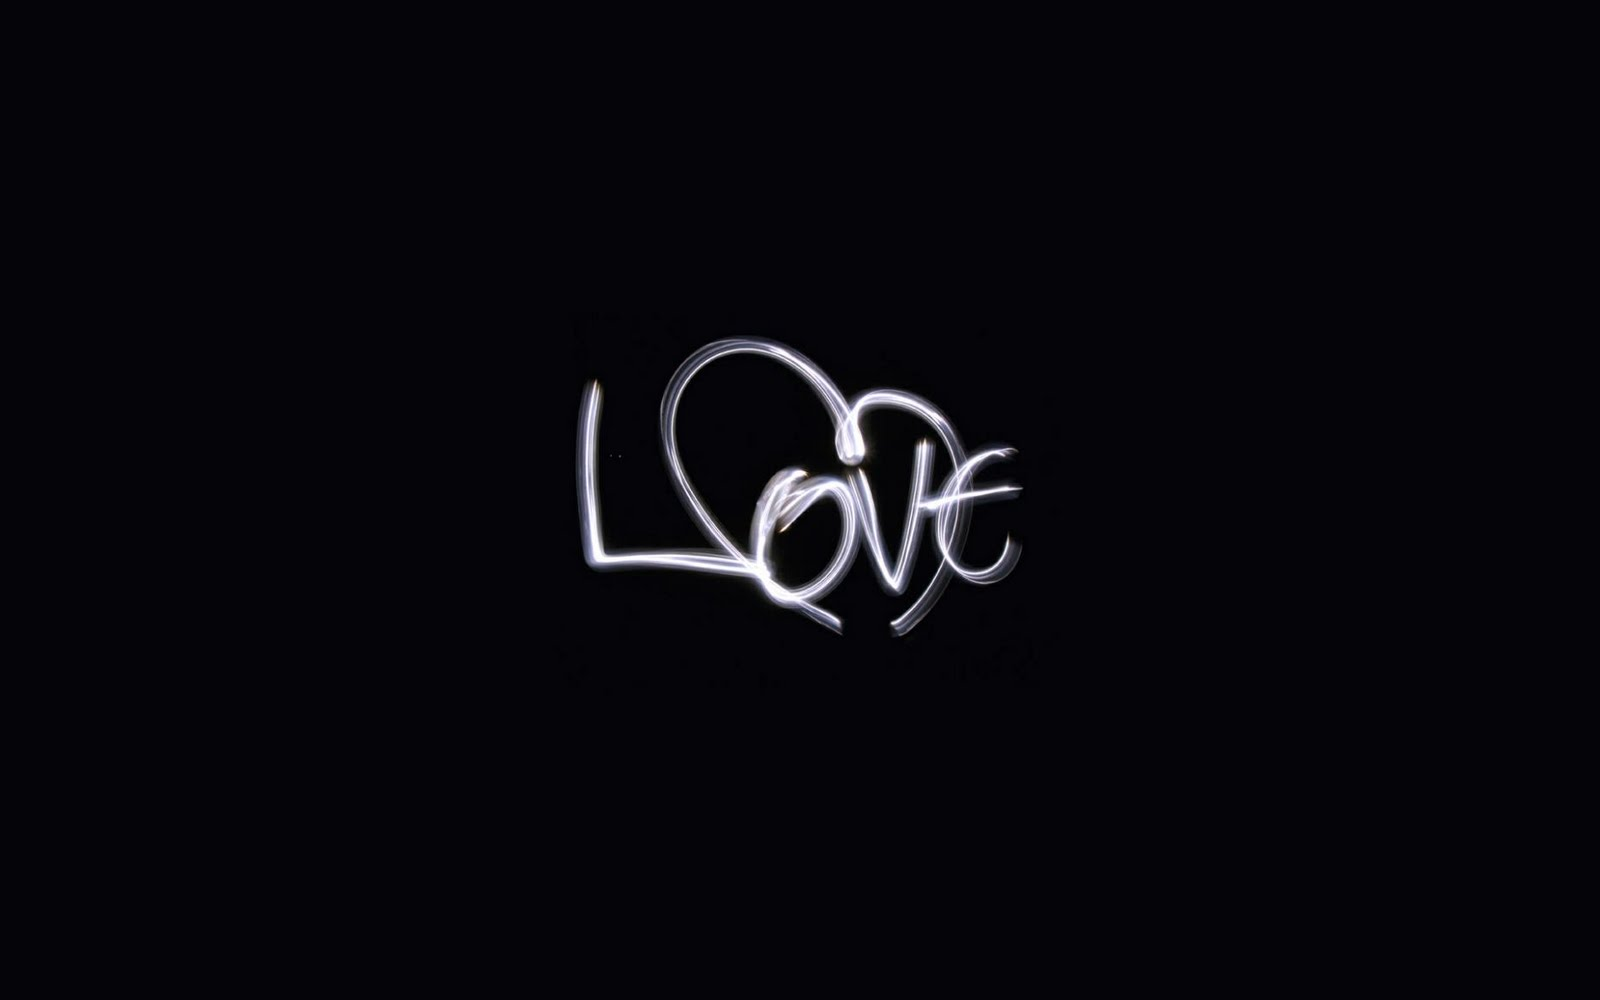 Love U Wallpaper Full Hd : TOP HD WALLPAPERS: LOVE HD WALLPAPER